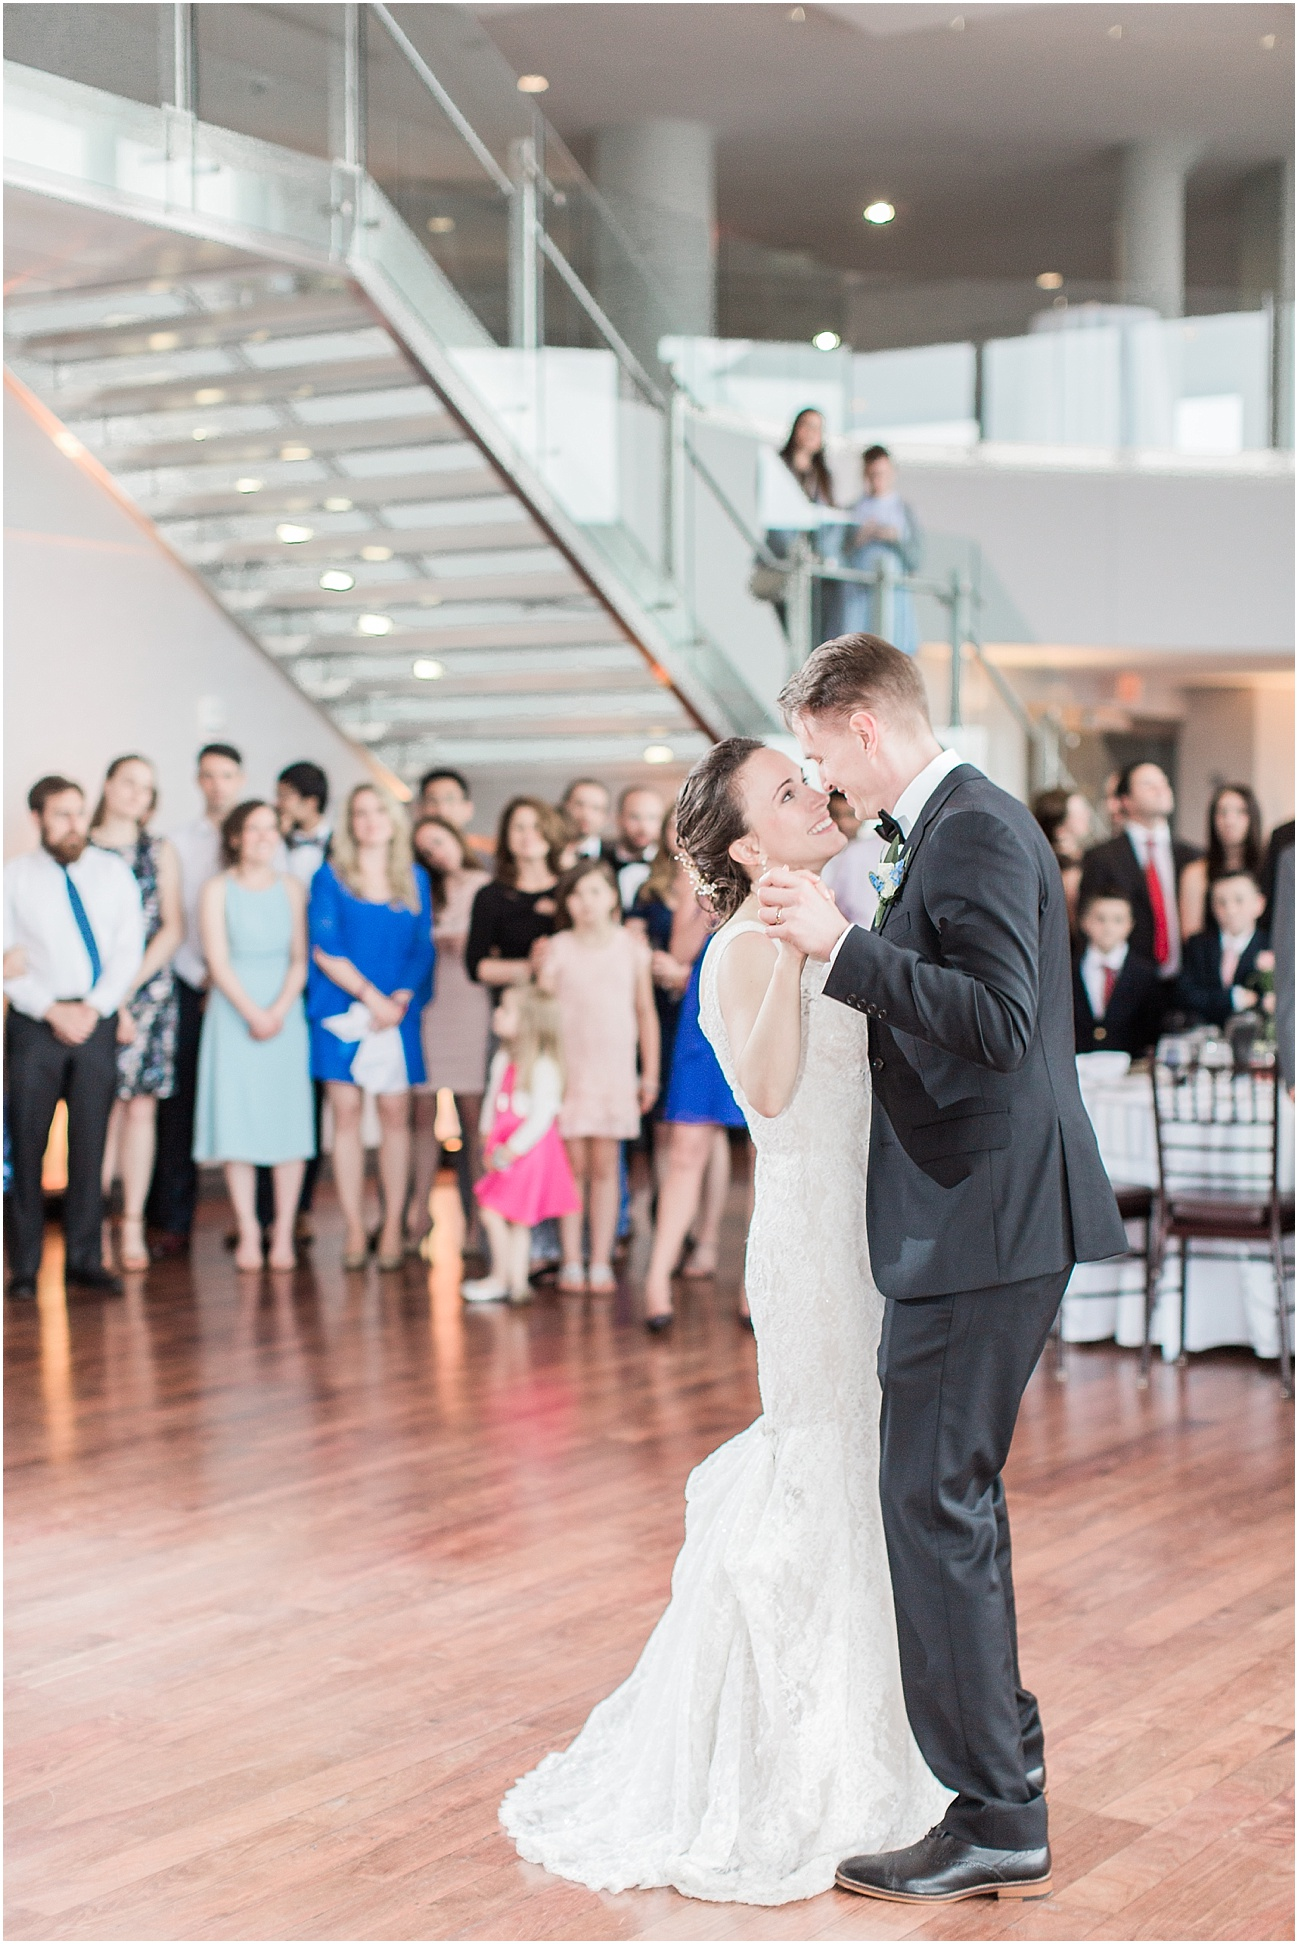 mariana_dylan_the_state_room_downtown_boston_wedding_photographer_meredith_jane_photography_photo_0139.jpg